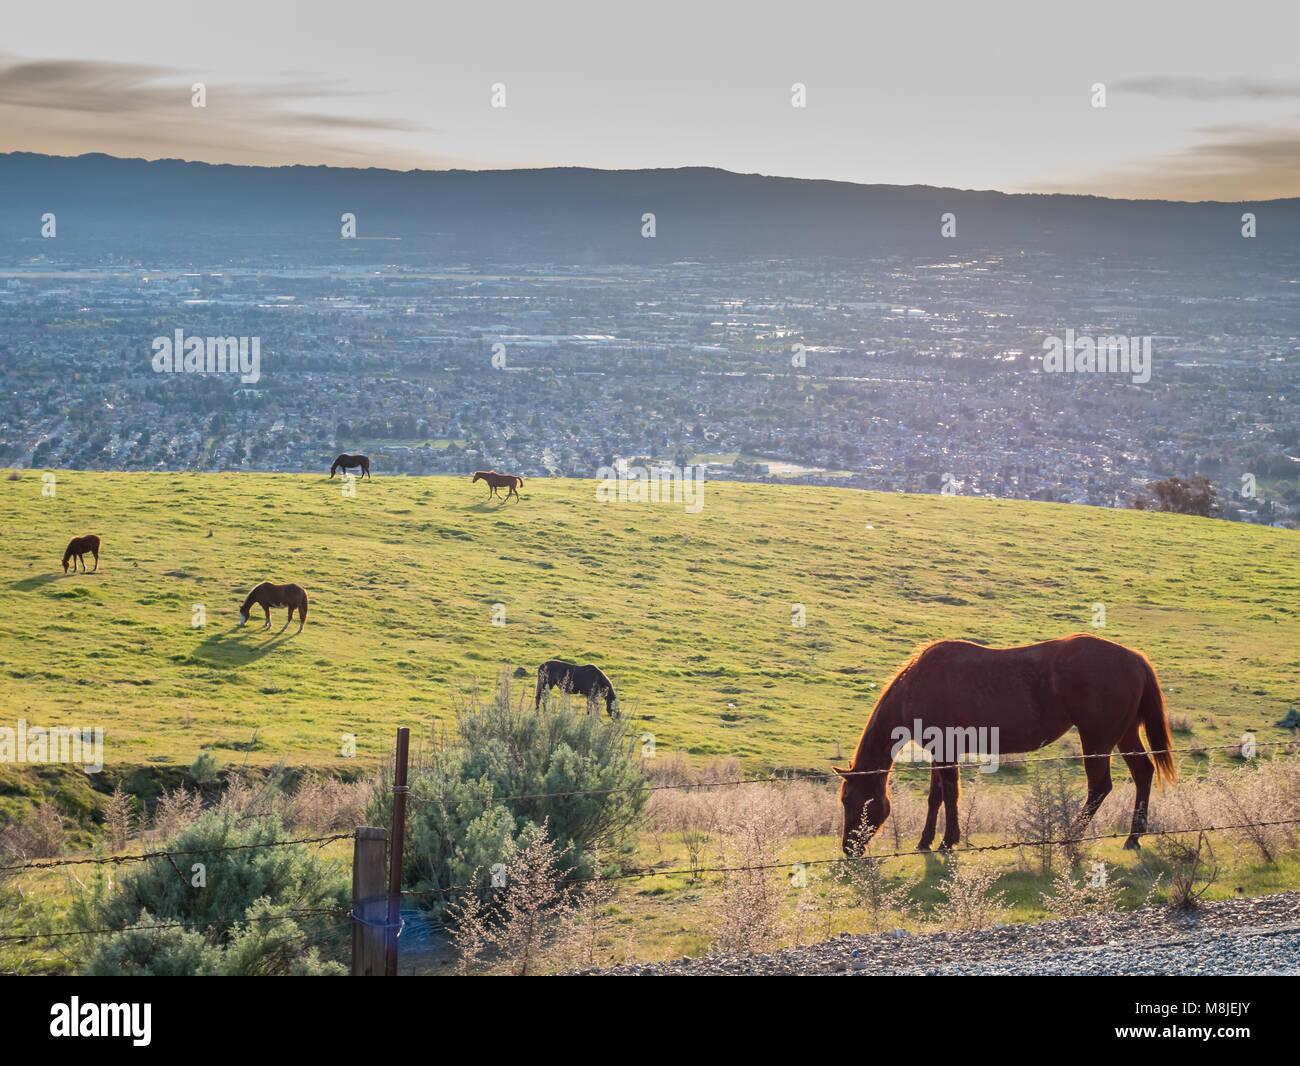 View of Brown Hourses on Green Grass with Silicon Valley in the Backgroud - Stock Image